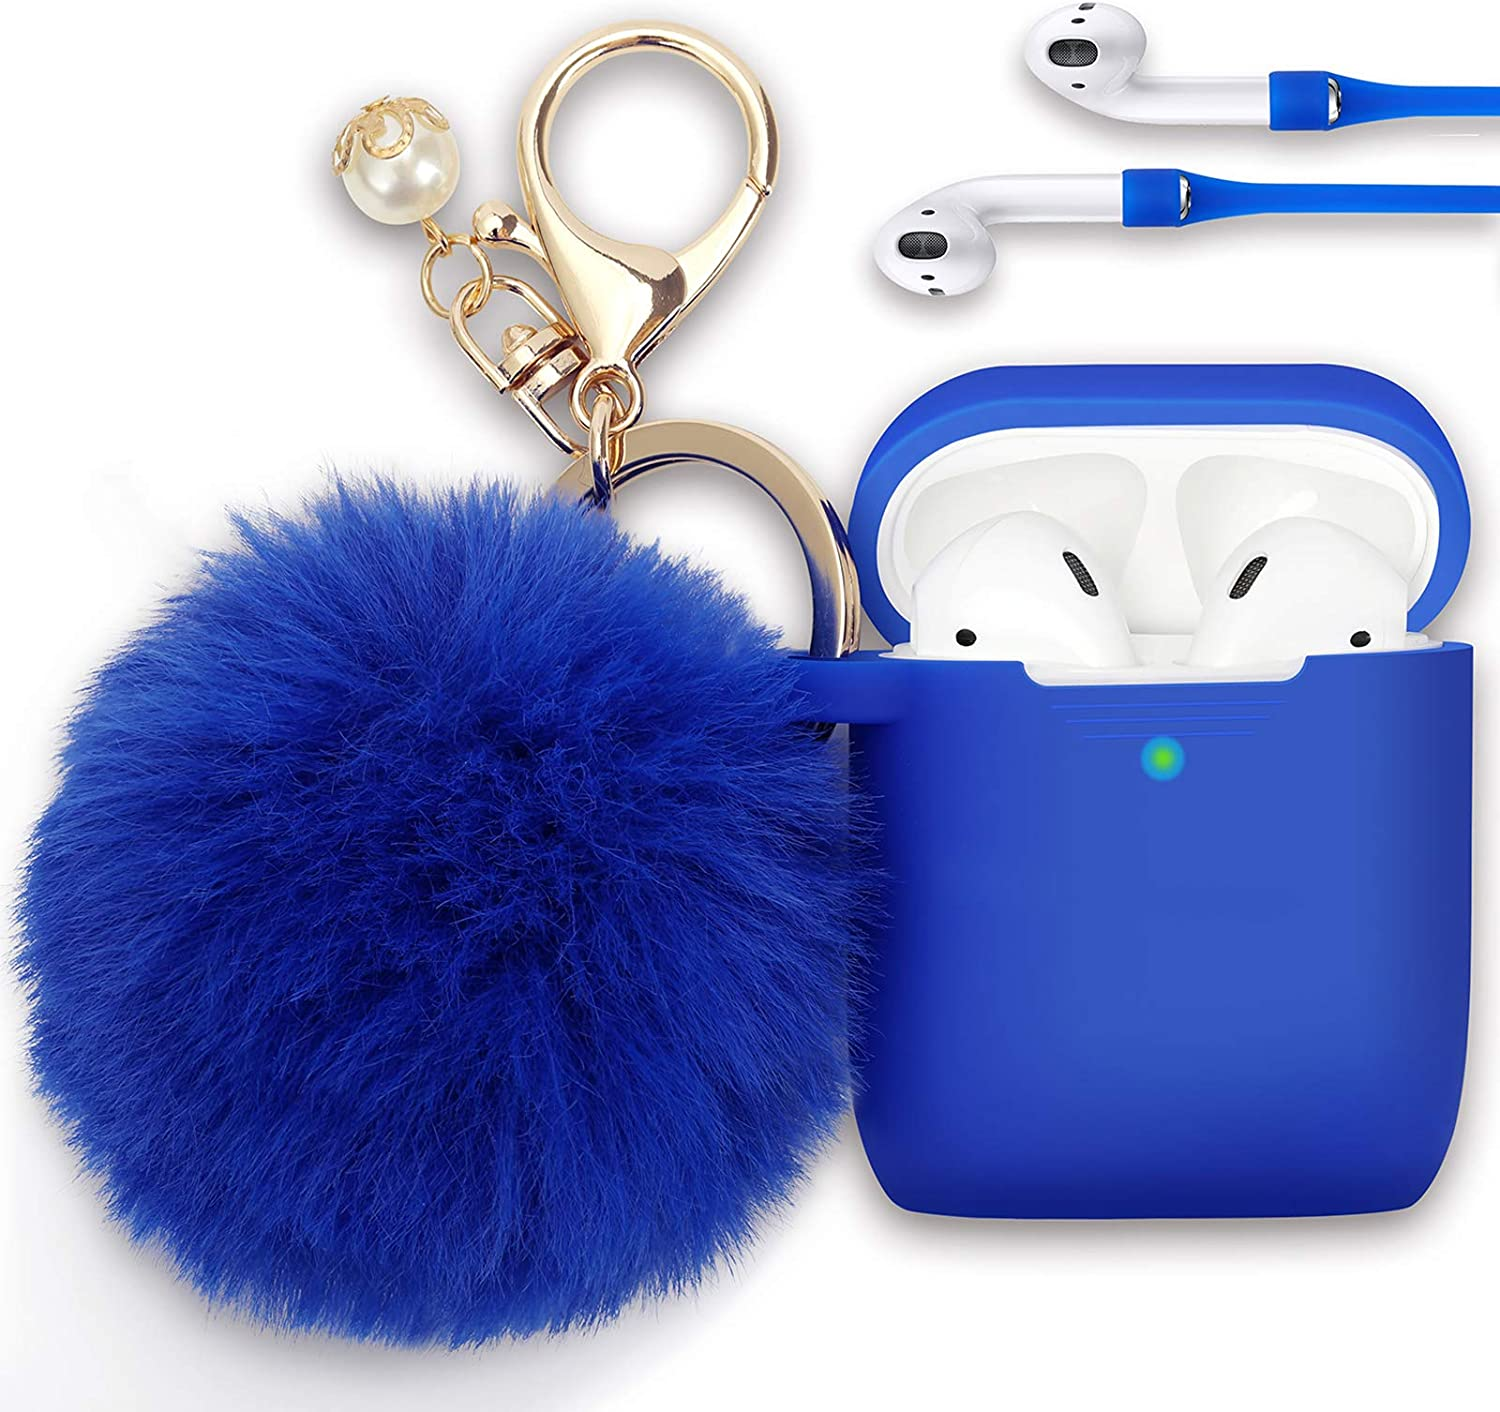 Filoto Case for Airpods, Airpod Case Cover for Apple Airpods 2&1 Charging Case, Cute Air Pods Silicone Protective Accessories Cases/Keychain/Pompom/Strap, Best Gift for Girls and Women, Cobalt Blue